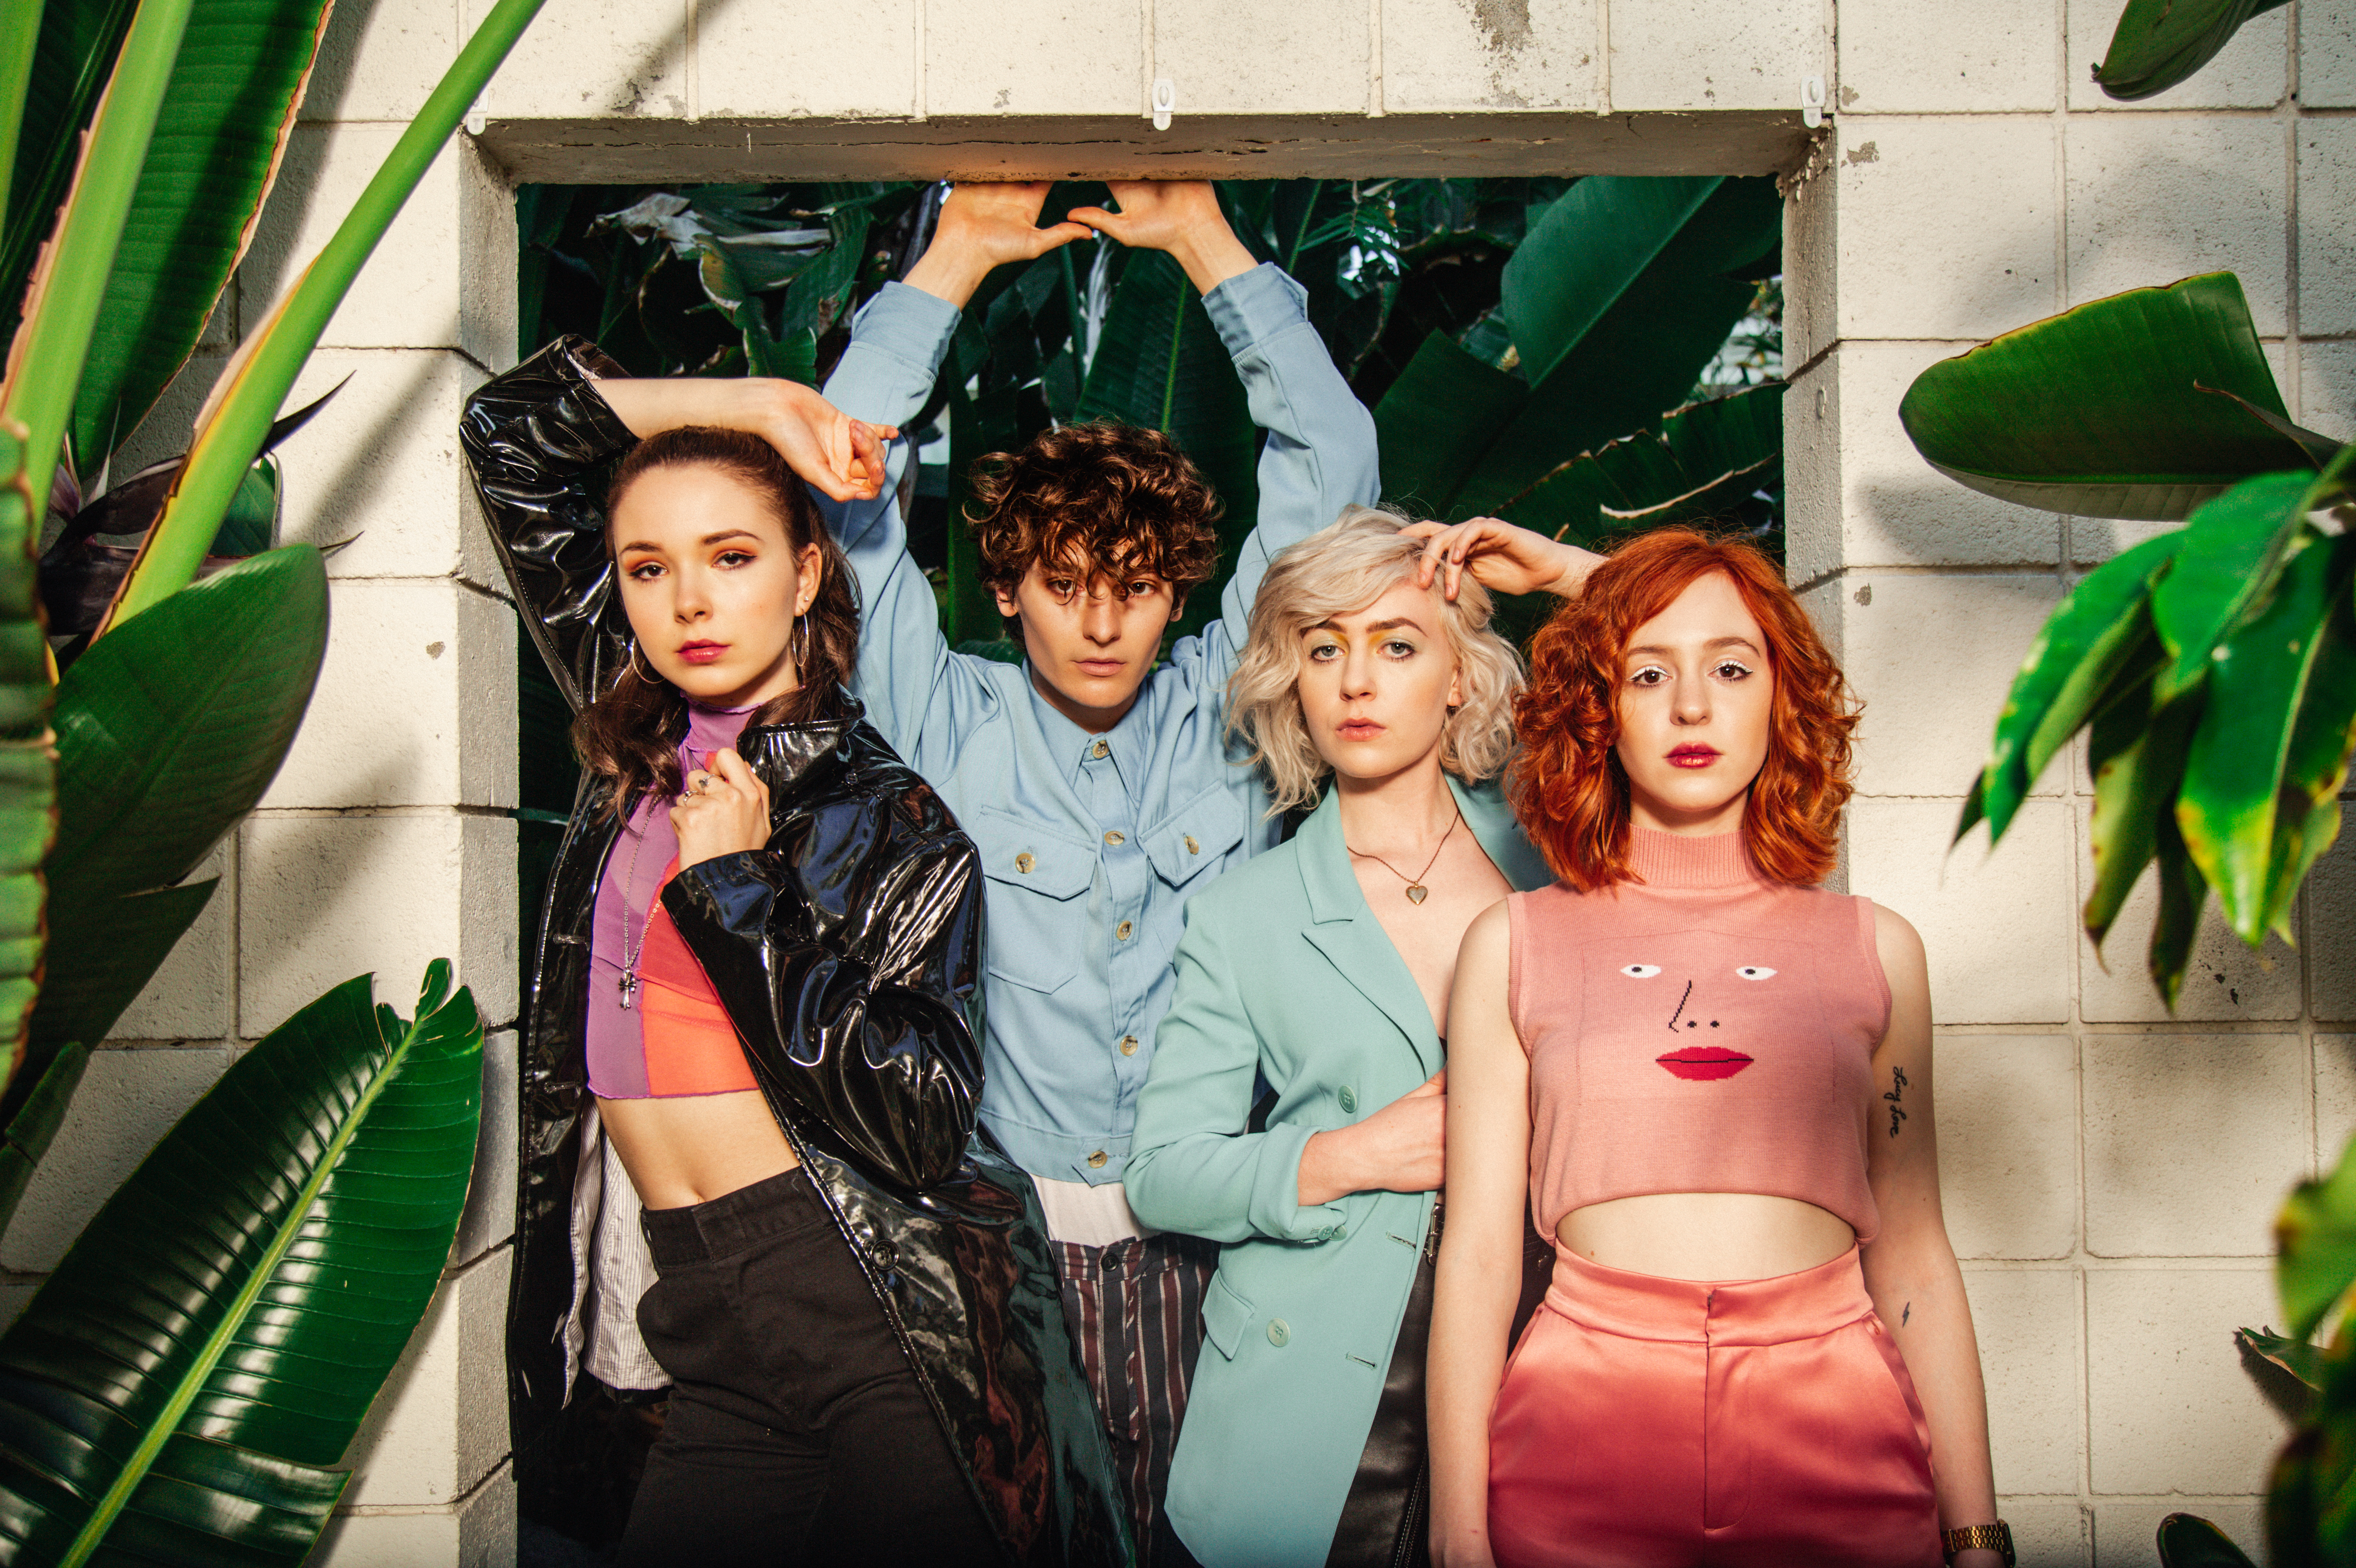 the regrettes 4k 1608983902 - The Regrettes 4k - The Regrettes 4k wallpapers